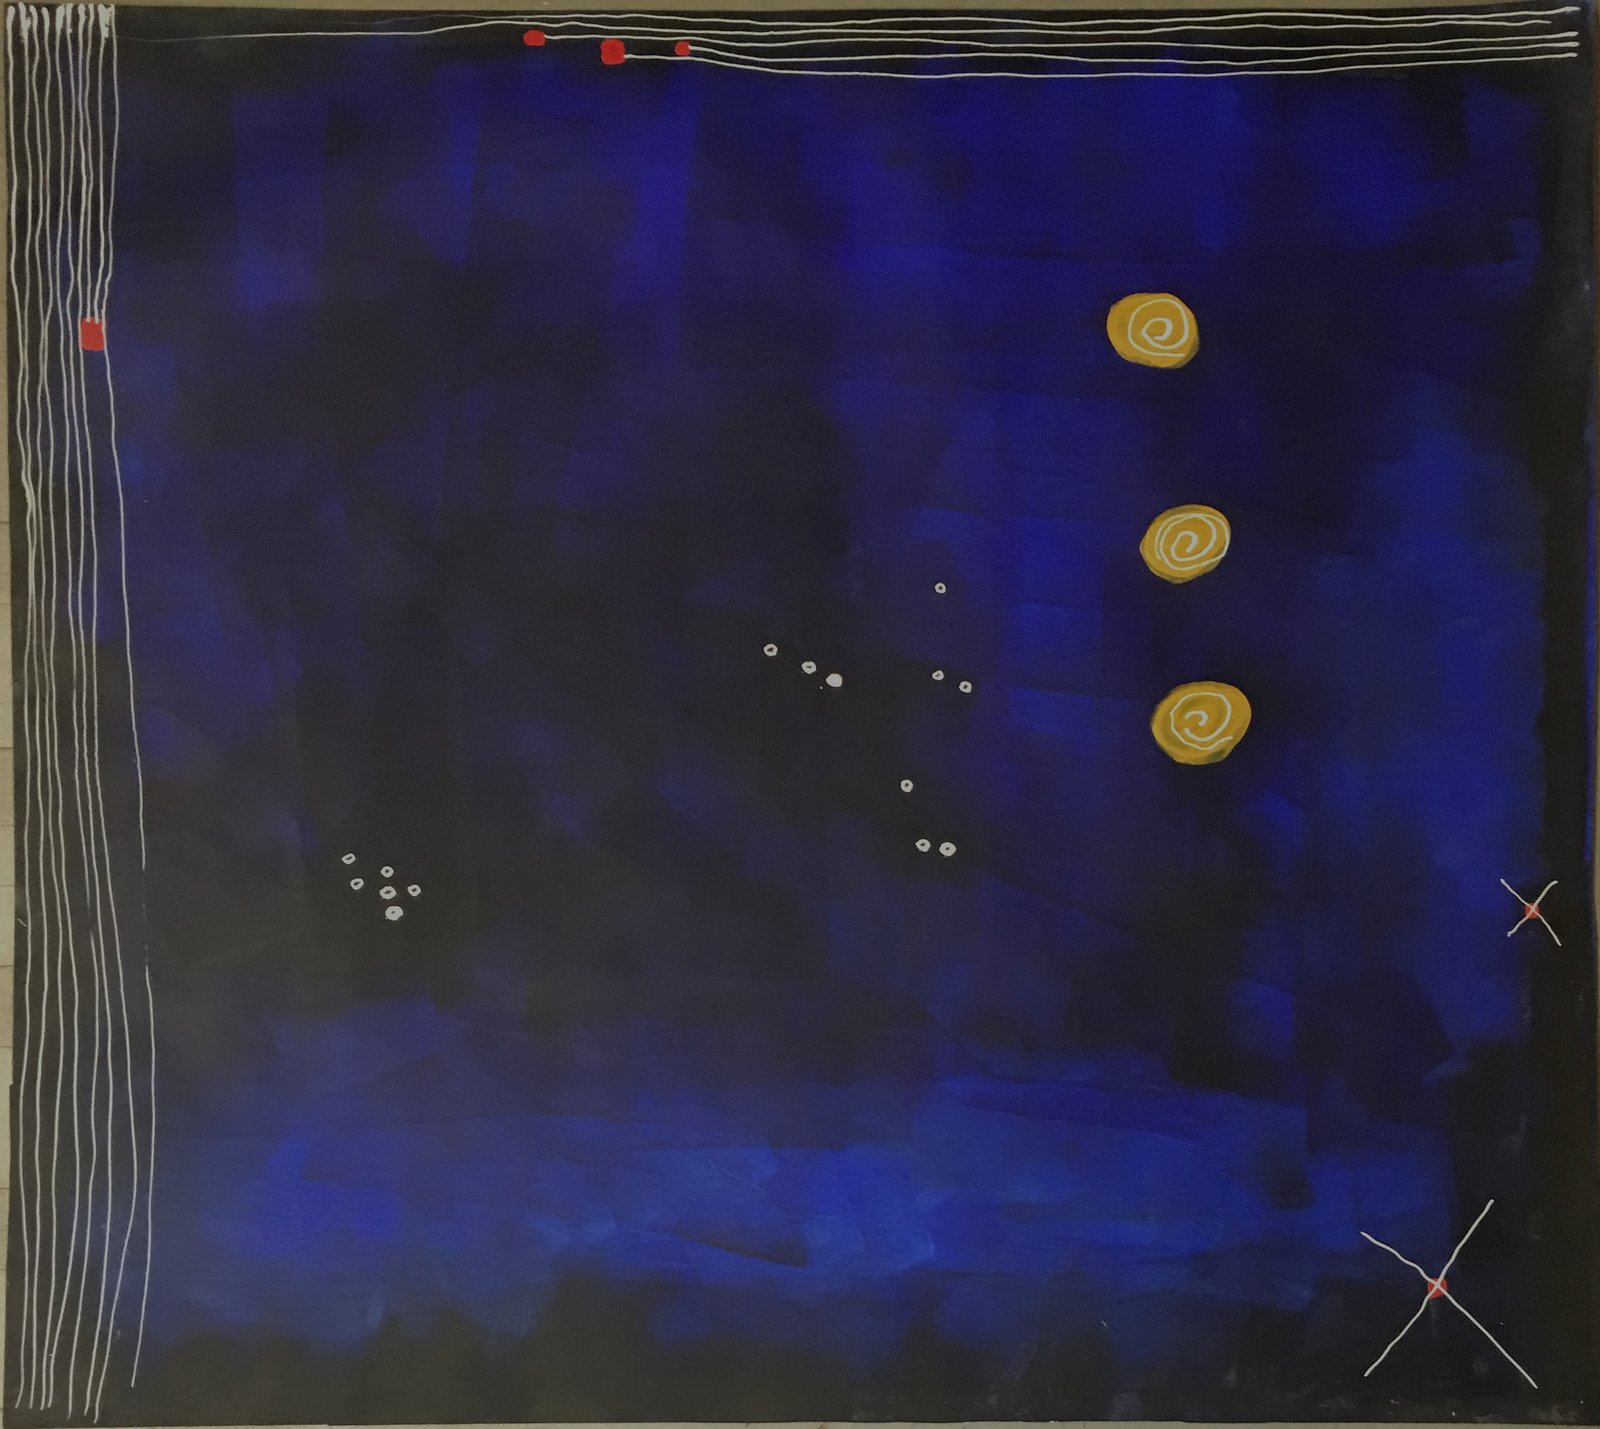 """MIDNIGHT SERENADE #2, 2017 acrylic, ink on paper 35""""x40"""""""" framed 2350.  Robert Solomon's Favorites from Works on Paper"""